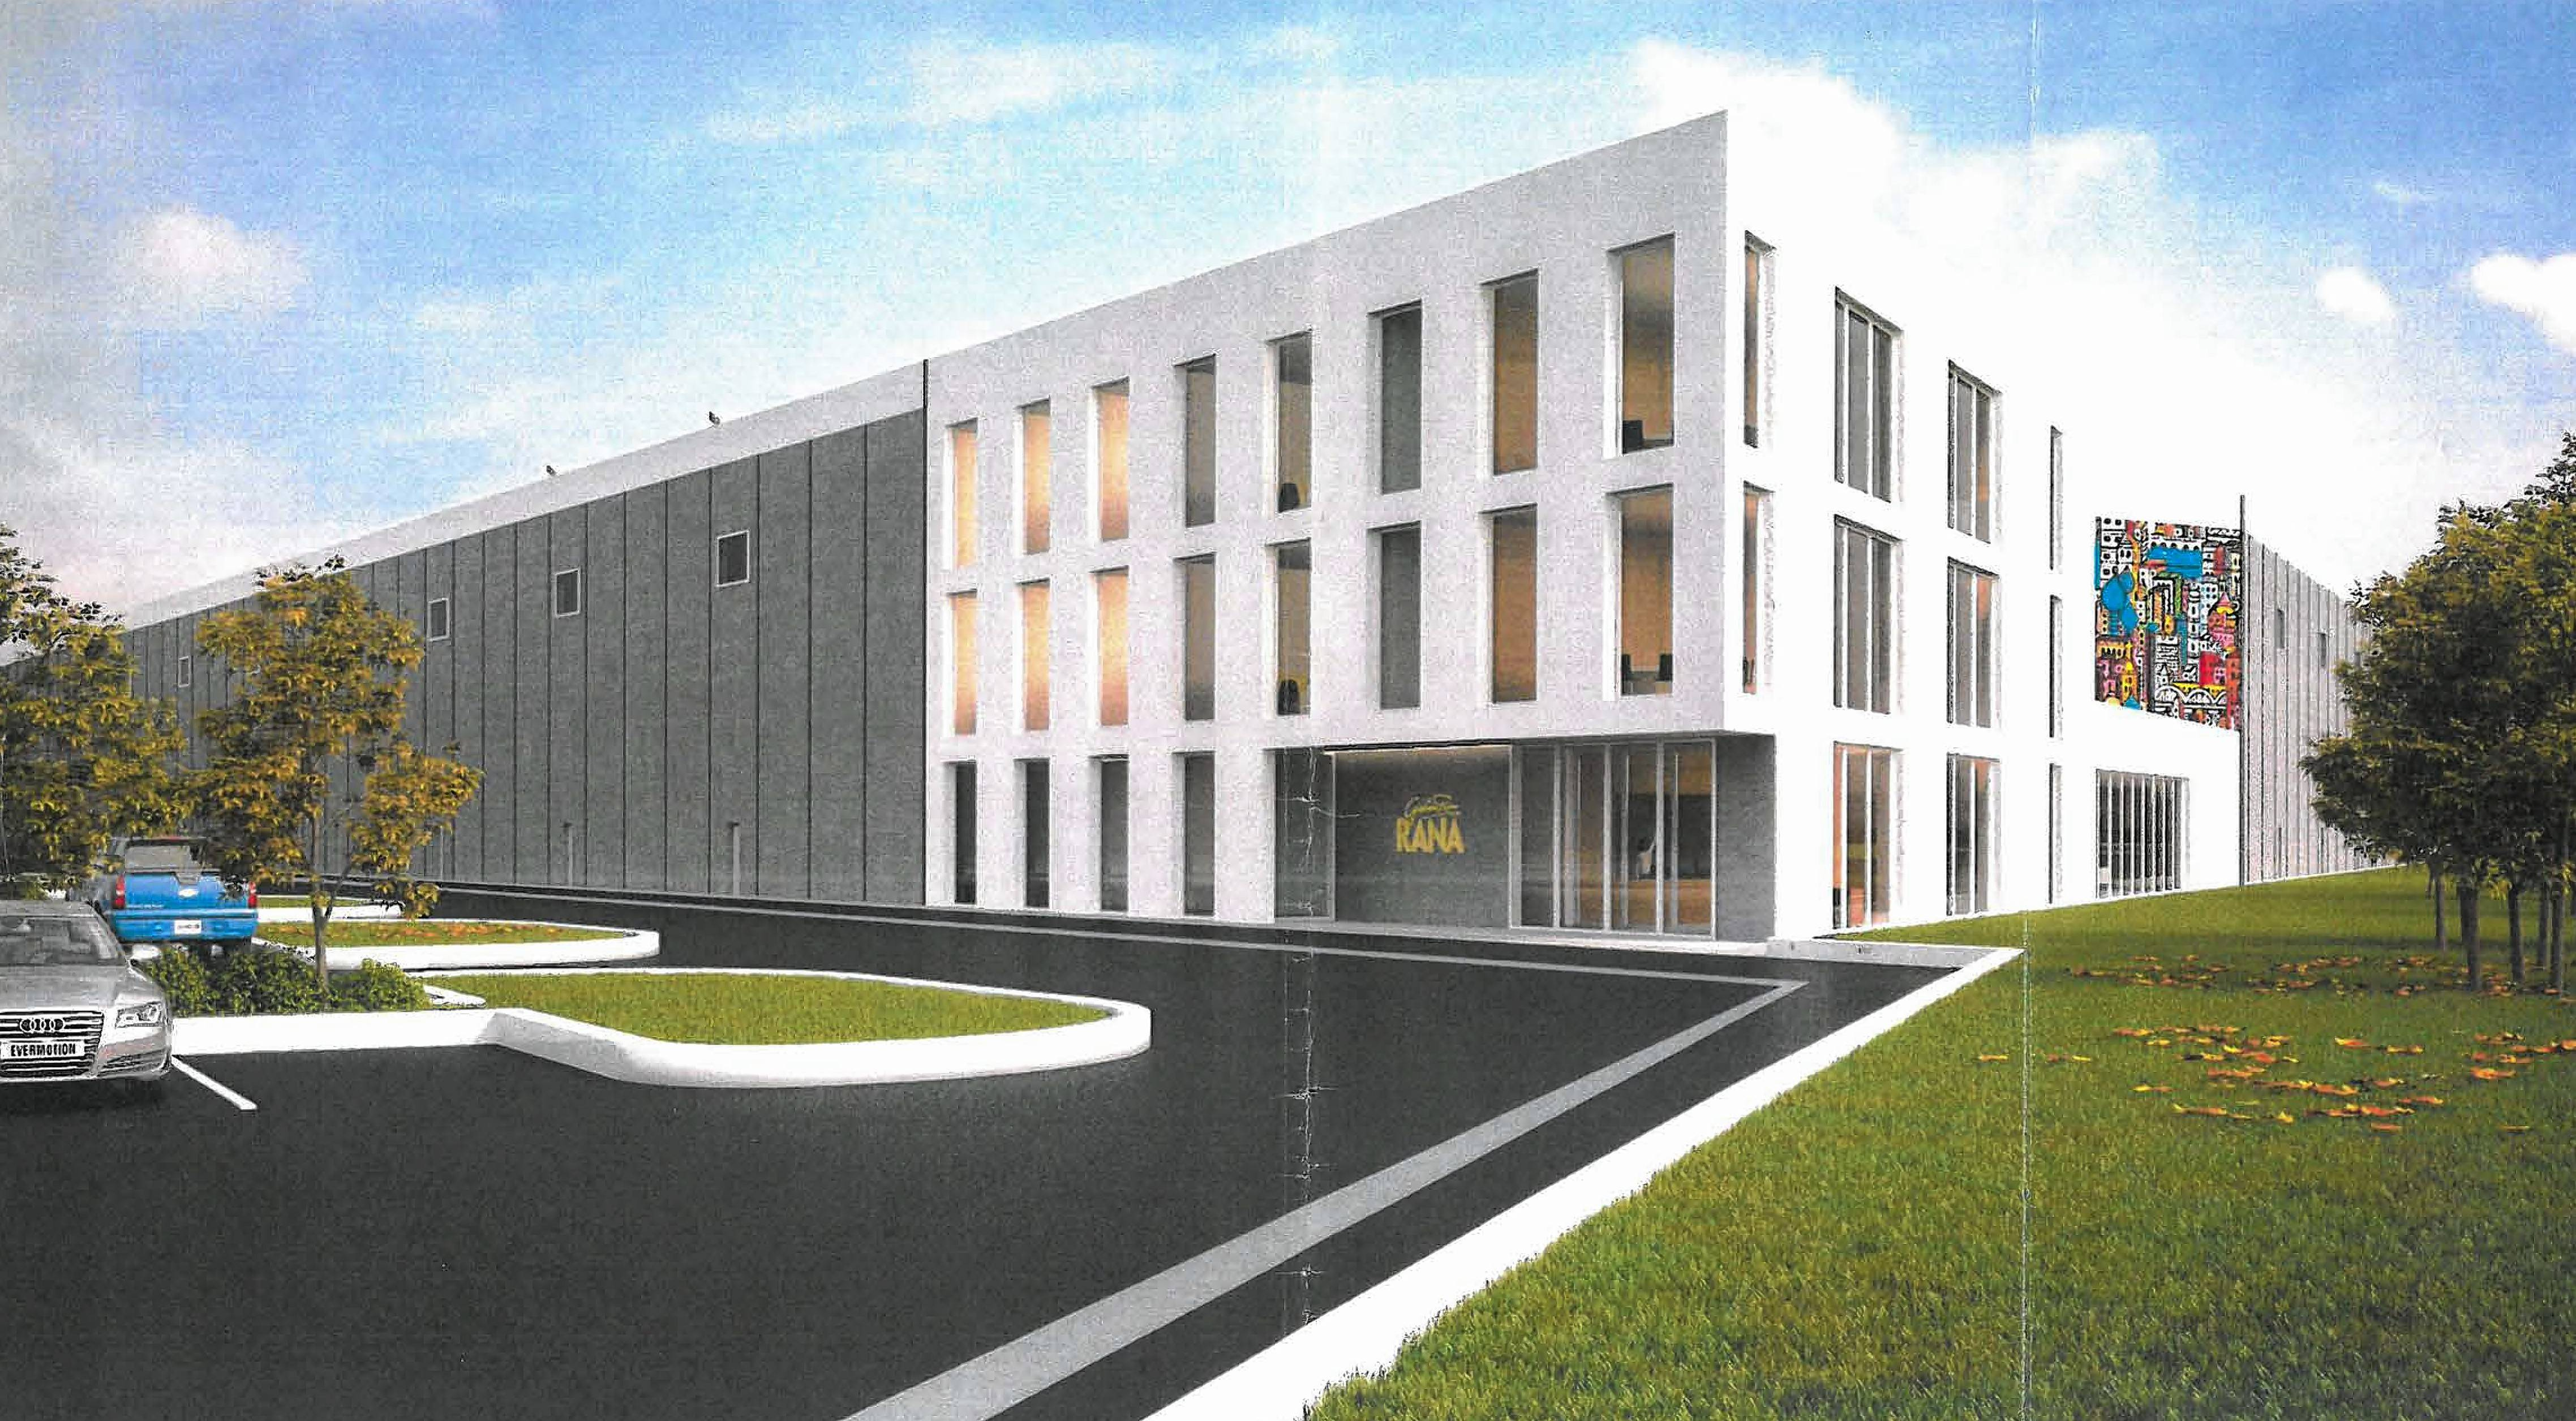 A rendering of Rana Meal Solutions' newly approved 326,000-square-foot building in Bartlett's Brewster Creek Business Park, which also will house the company's corporate headquarters when completed next year.